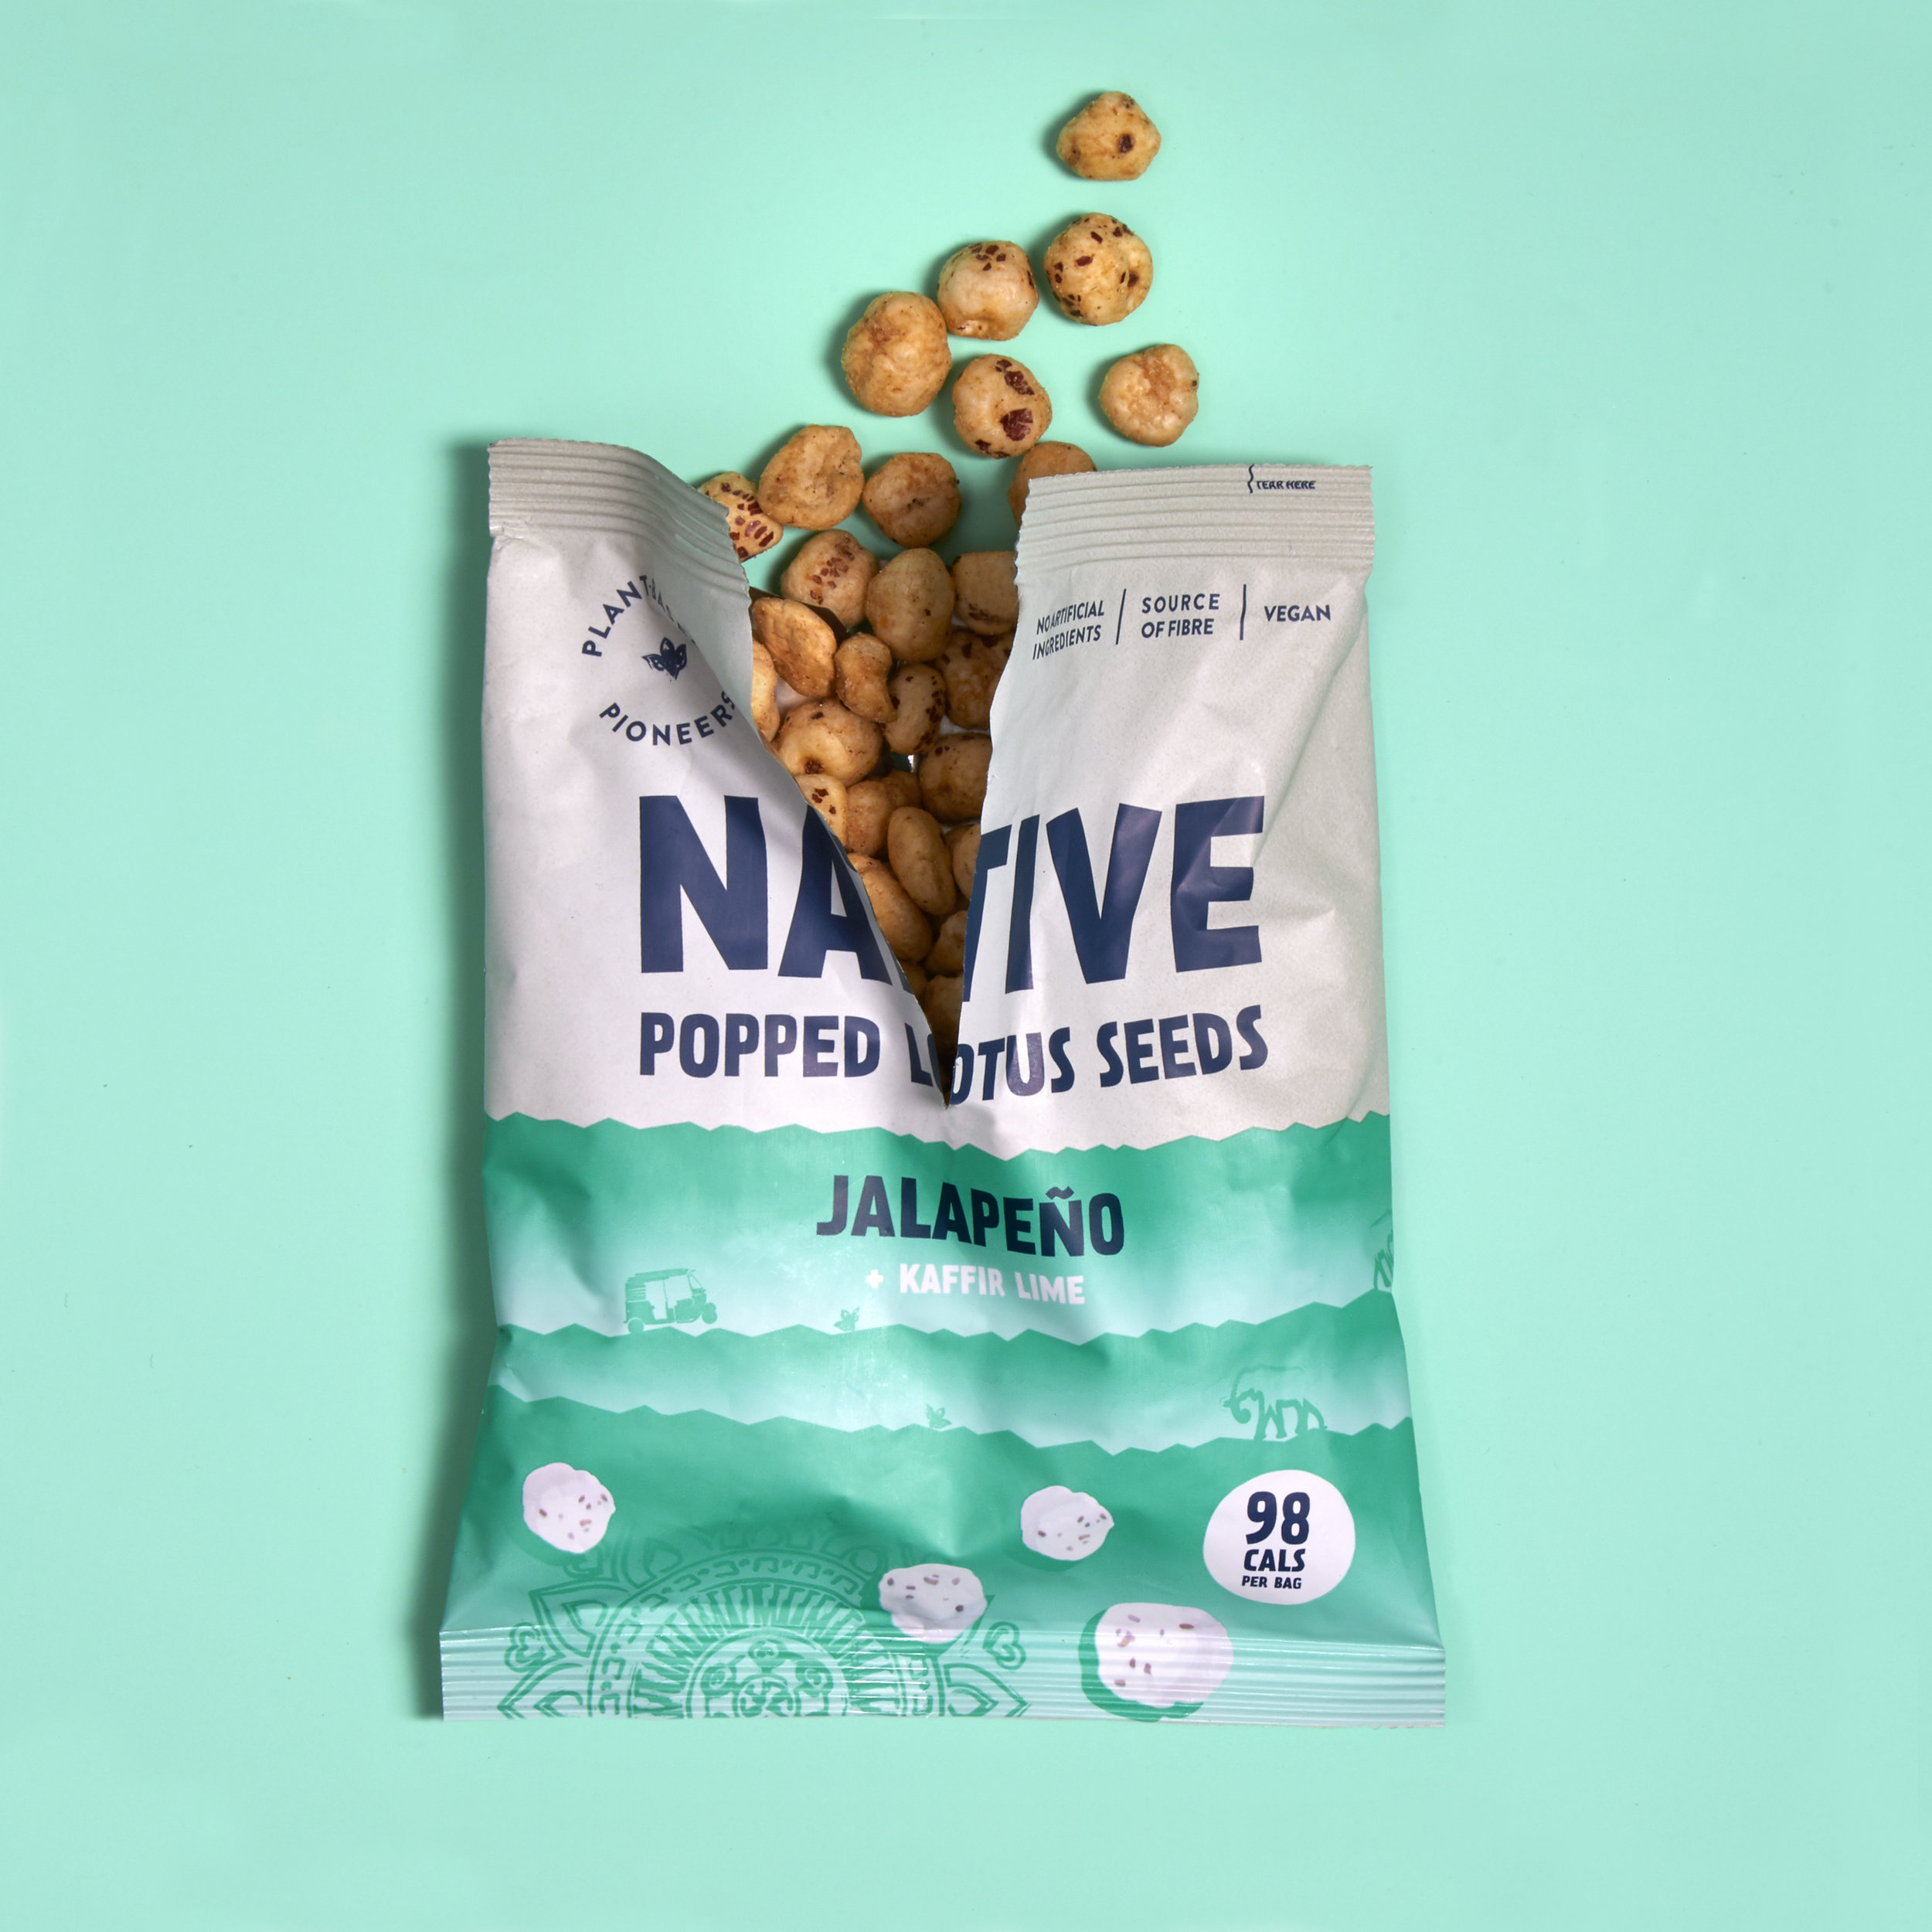 Plantbased snacks launch into C-stores